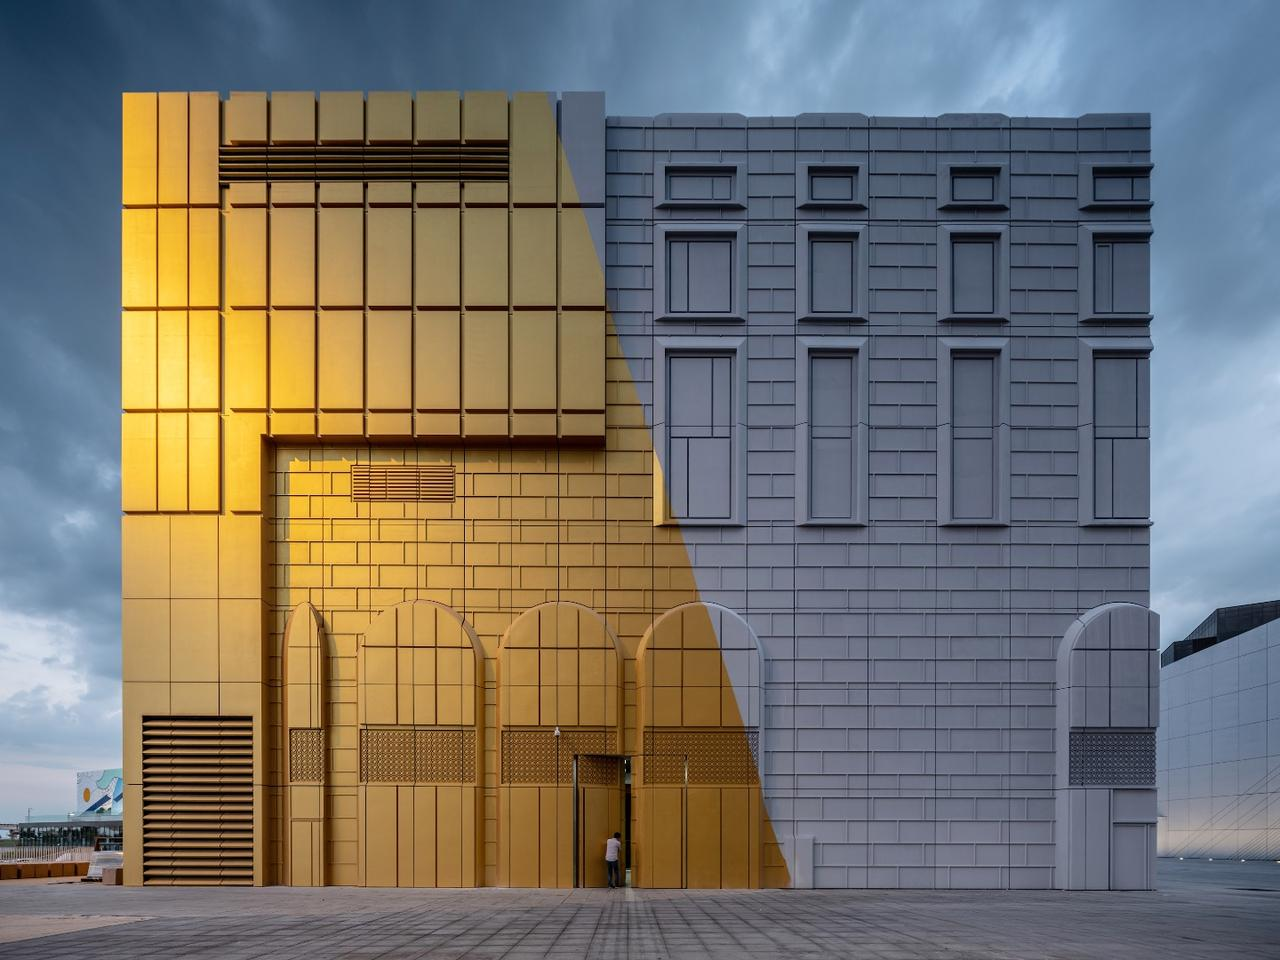 The Imprint's facades incorporate stylistic elements of the surrounding buildings